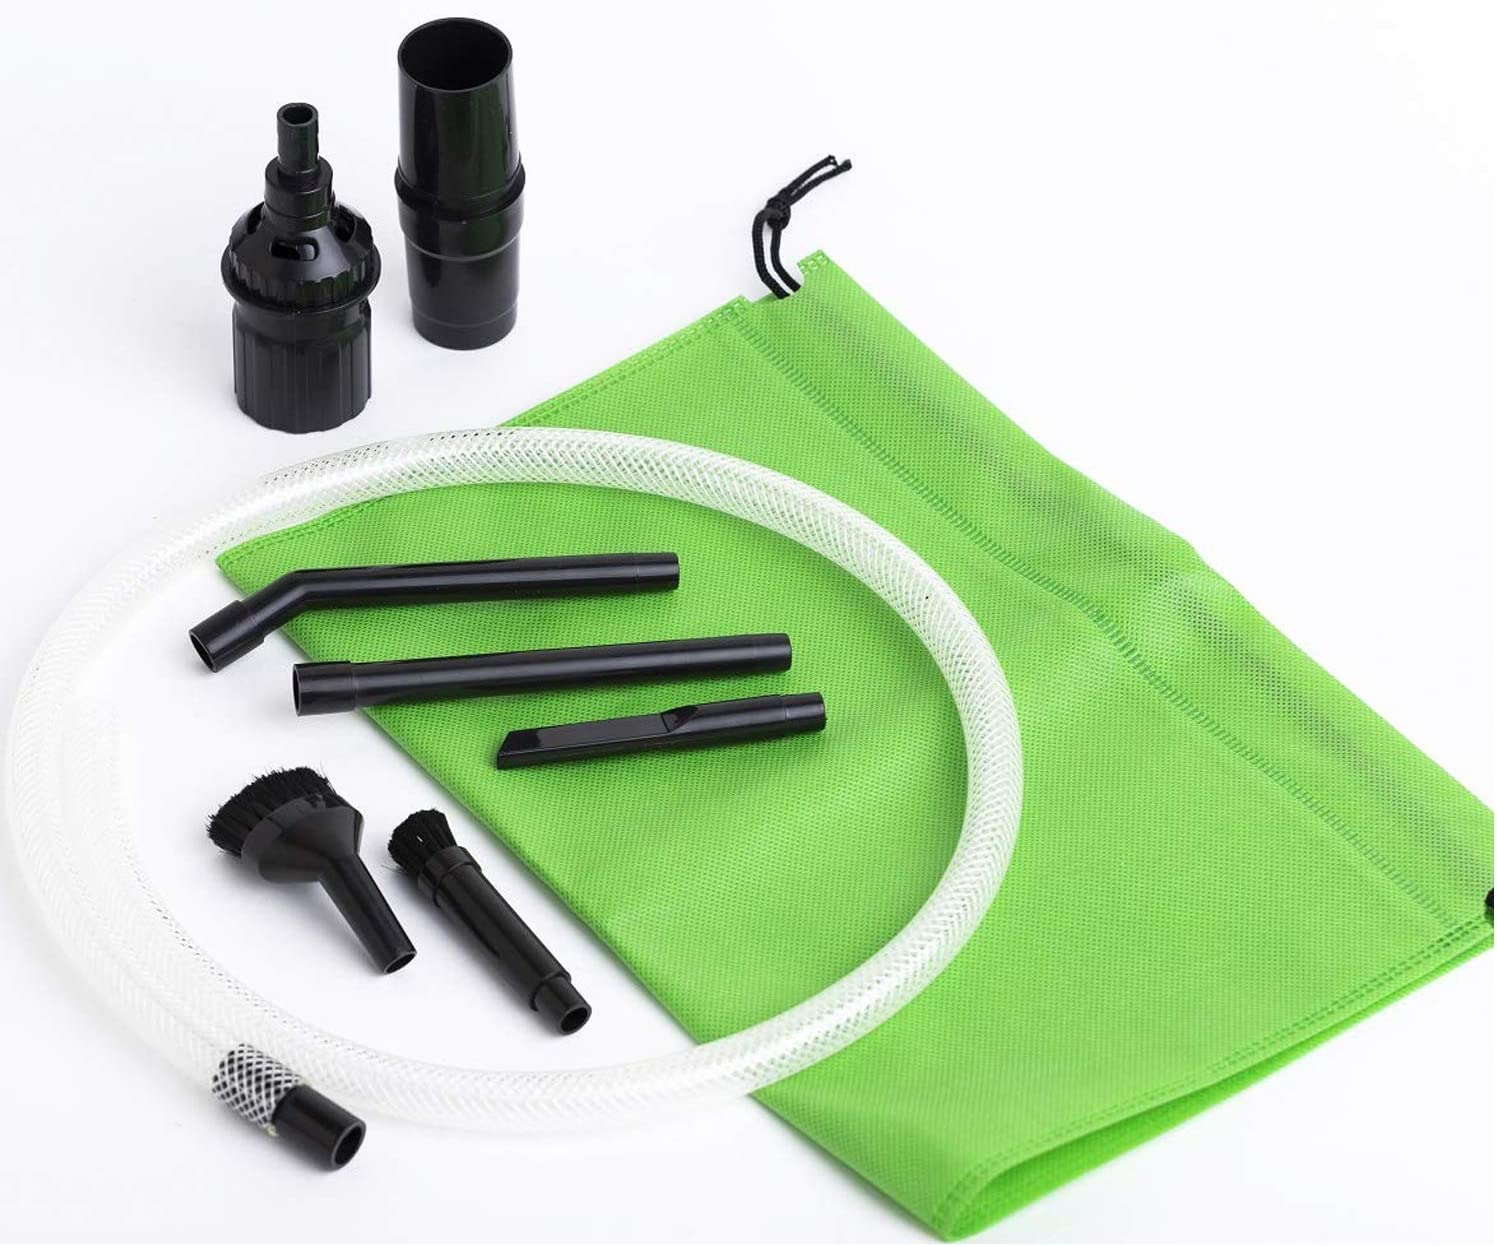 Zeling - Kit de Accesorios para aspiradora Mini Universal (32-35 mm): Amazon.es: Hogar